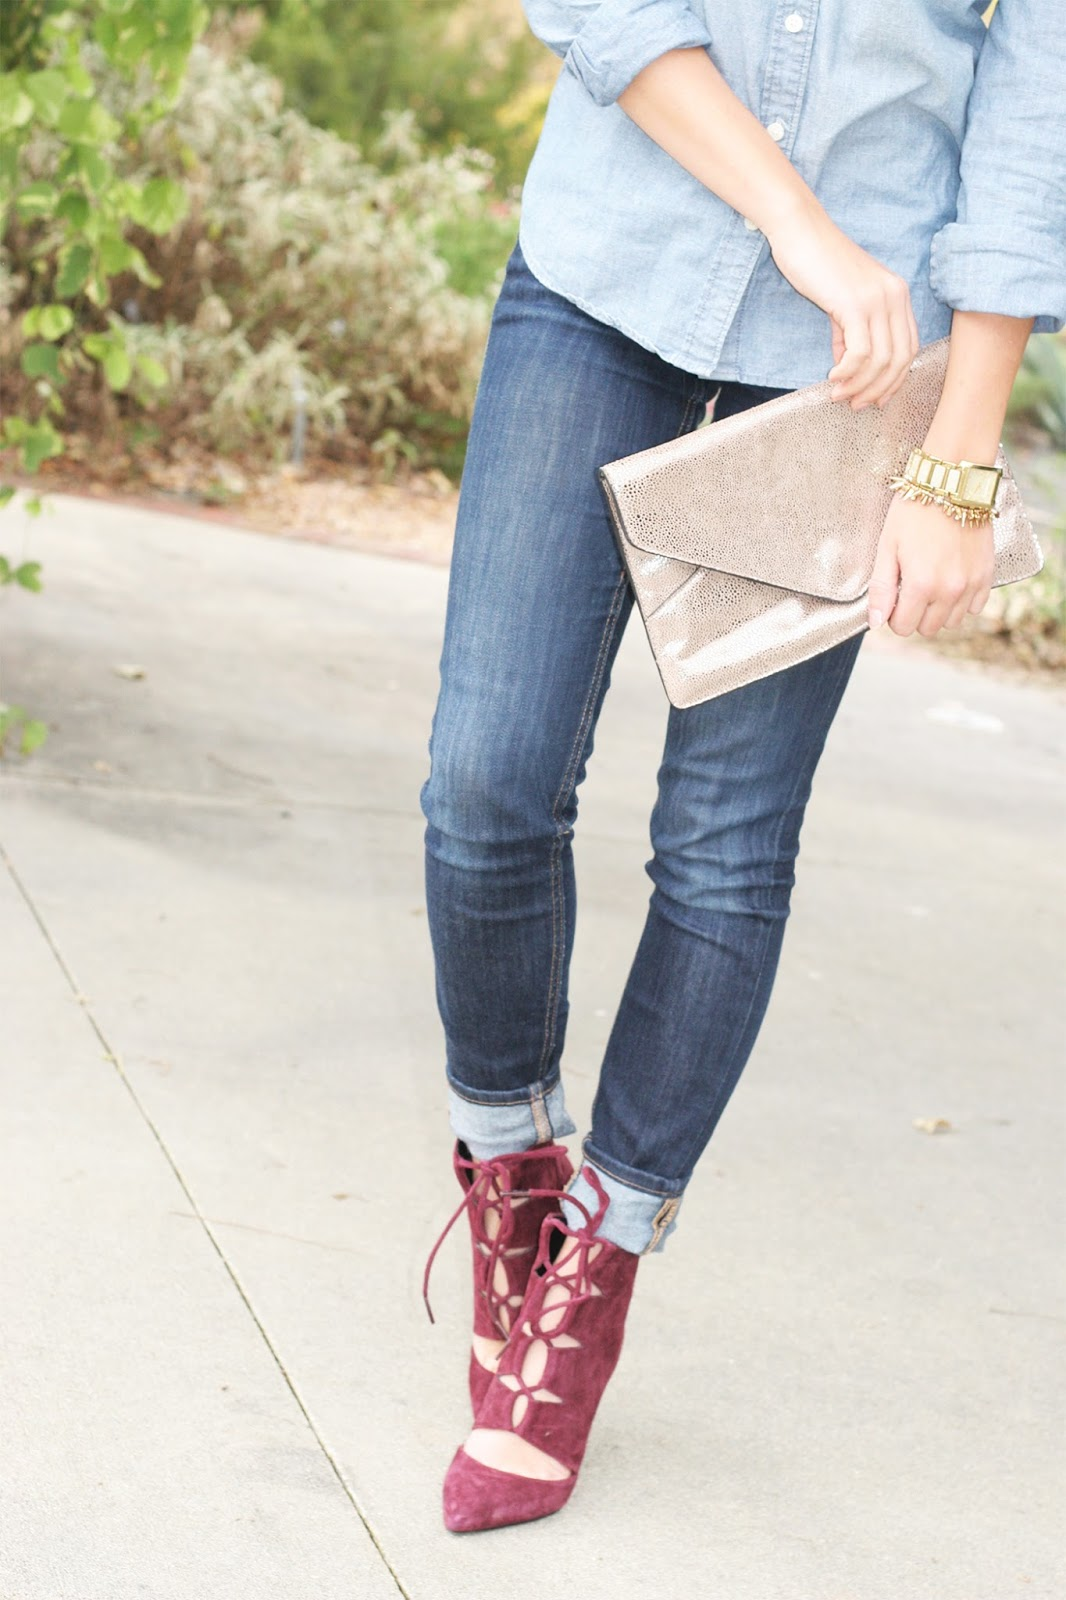 metallic-clutch-with-maroon-shoes